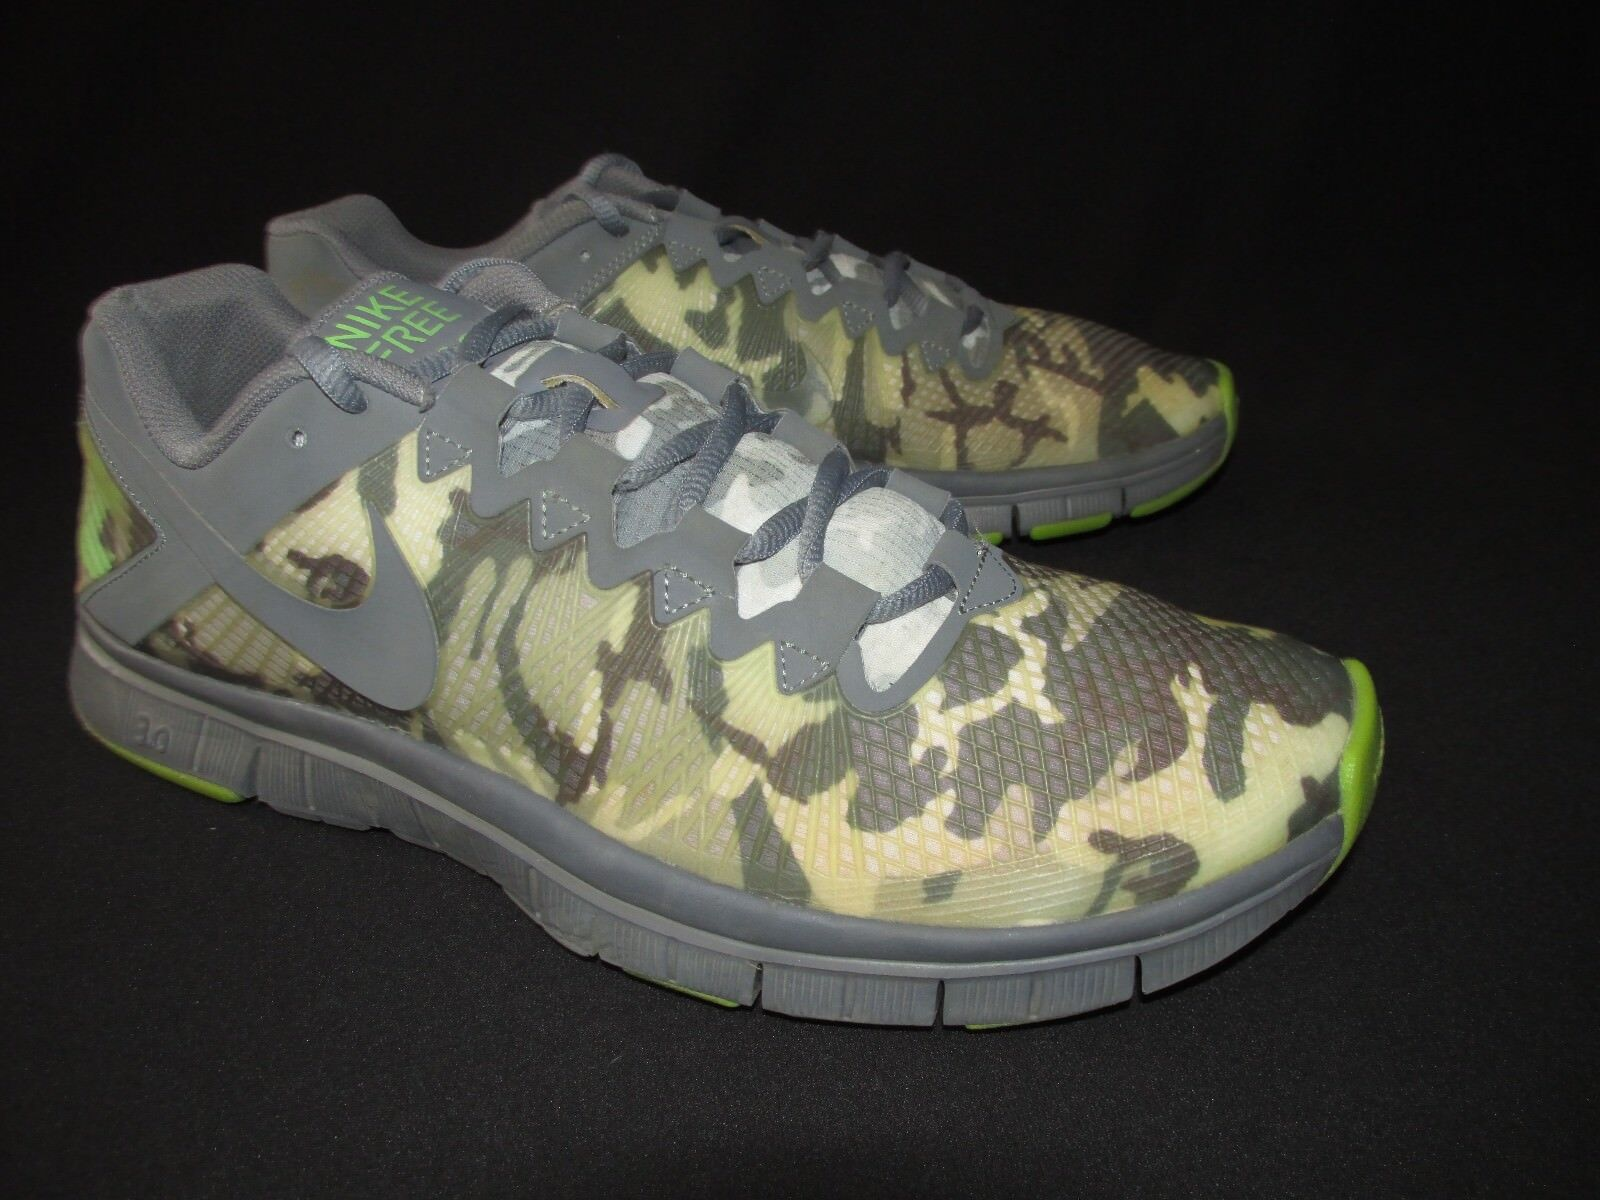 Great discount Nike Free 3.0 Trainer Camo Running Shoes 625164-002  Men's 11.5M